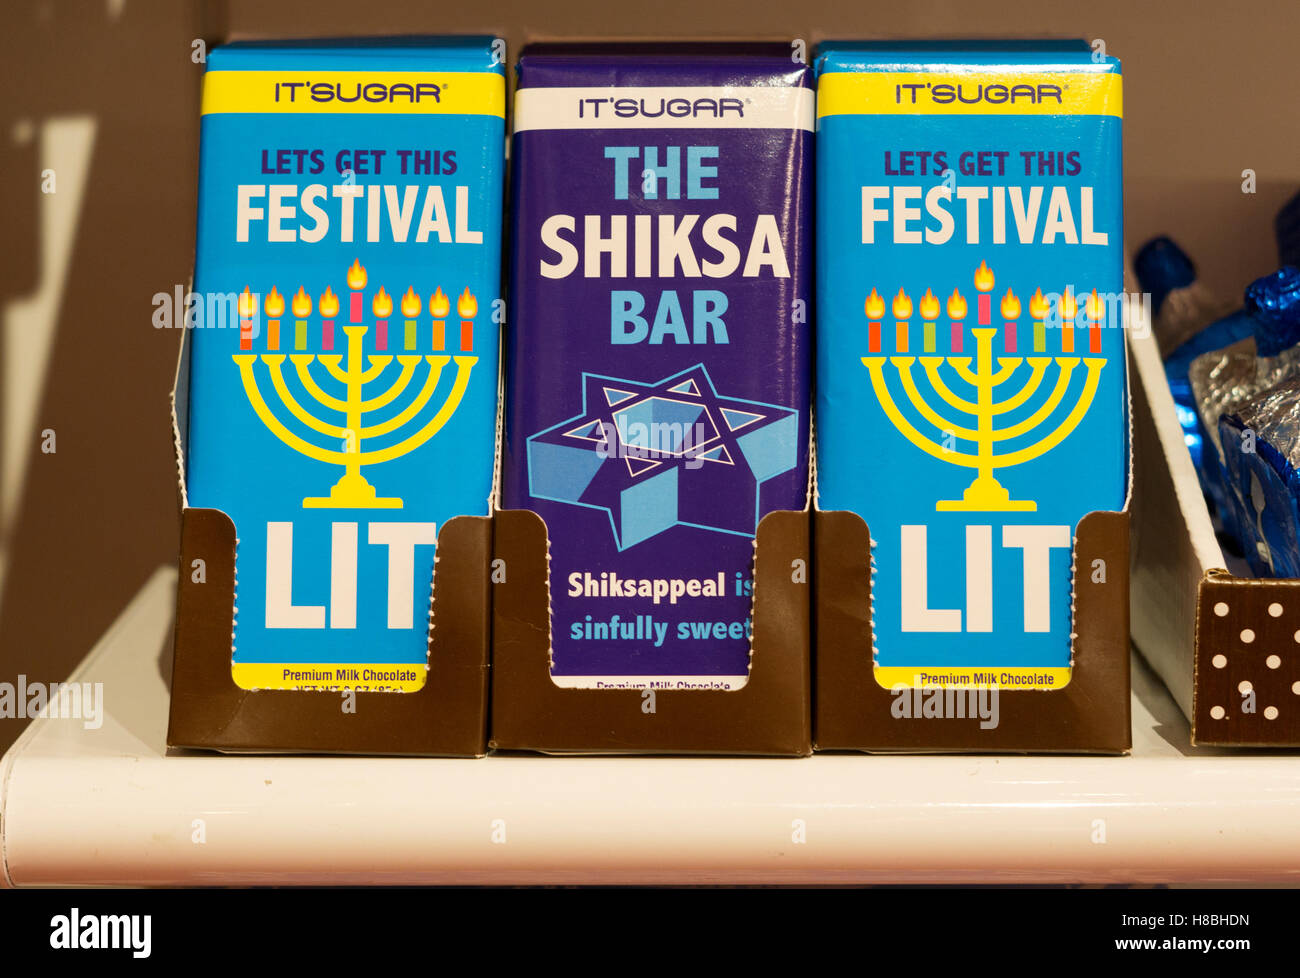 Funny Hanukkah gift chocolate bars for sale at It'sugar on Broadway in Greenwich Village, New York City - Stock Image